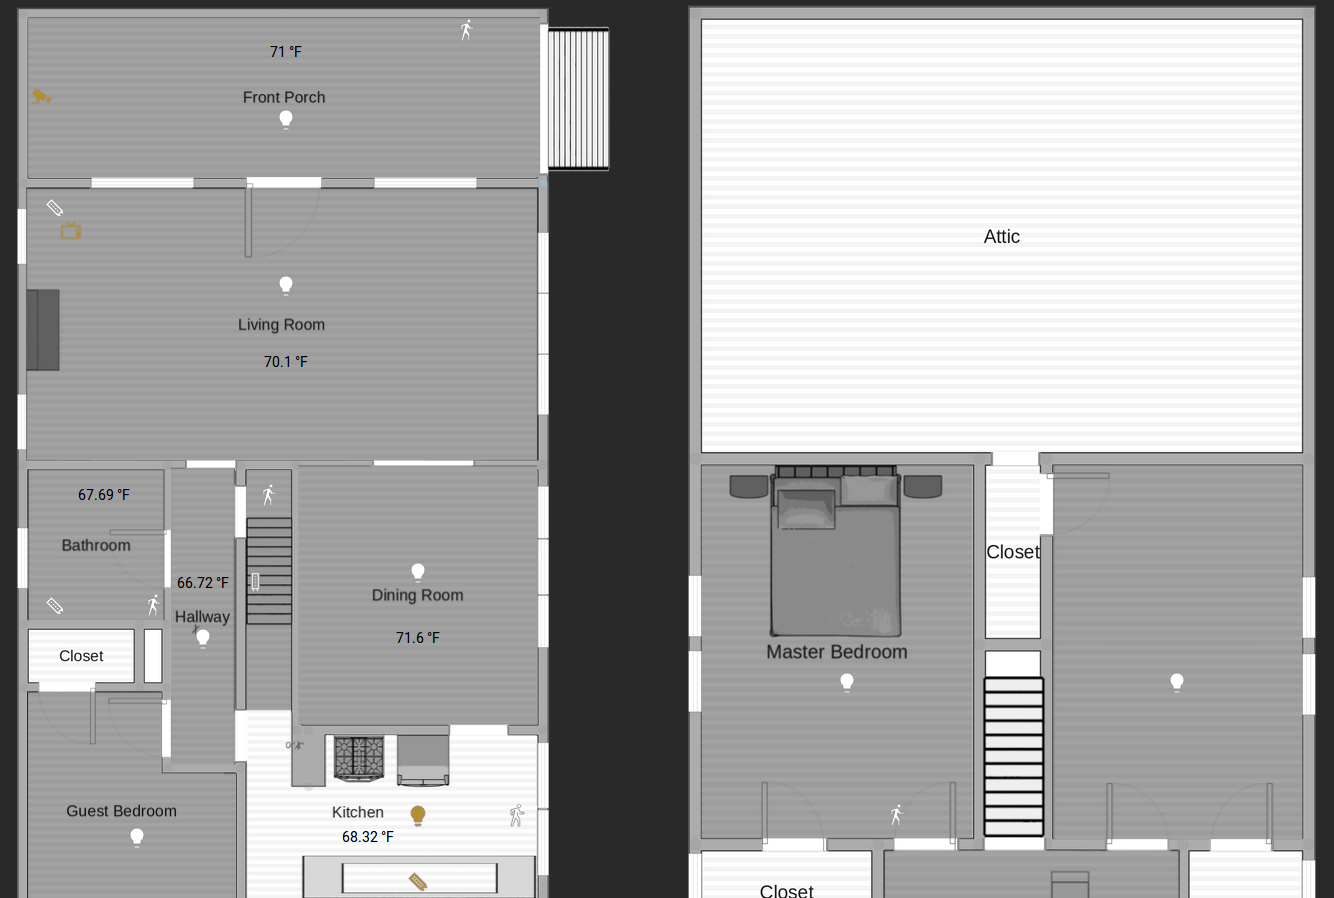 My 2D Floorplan